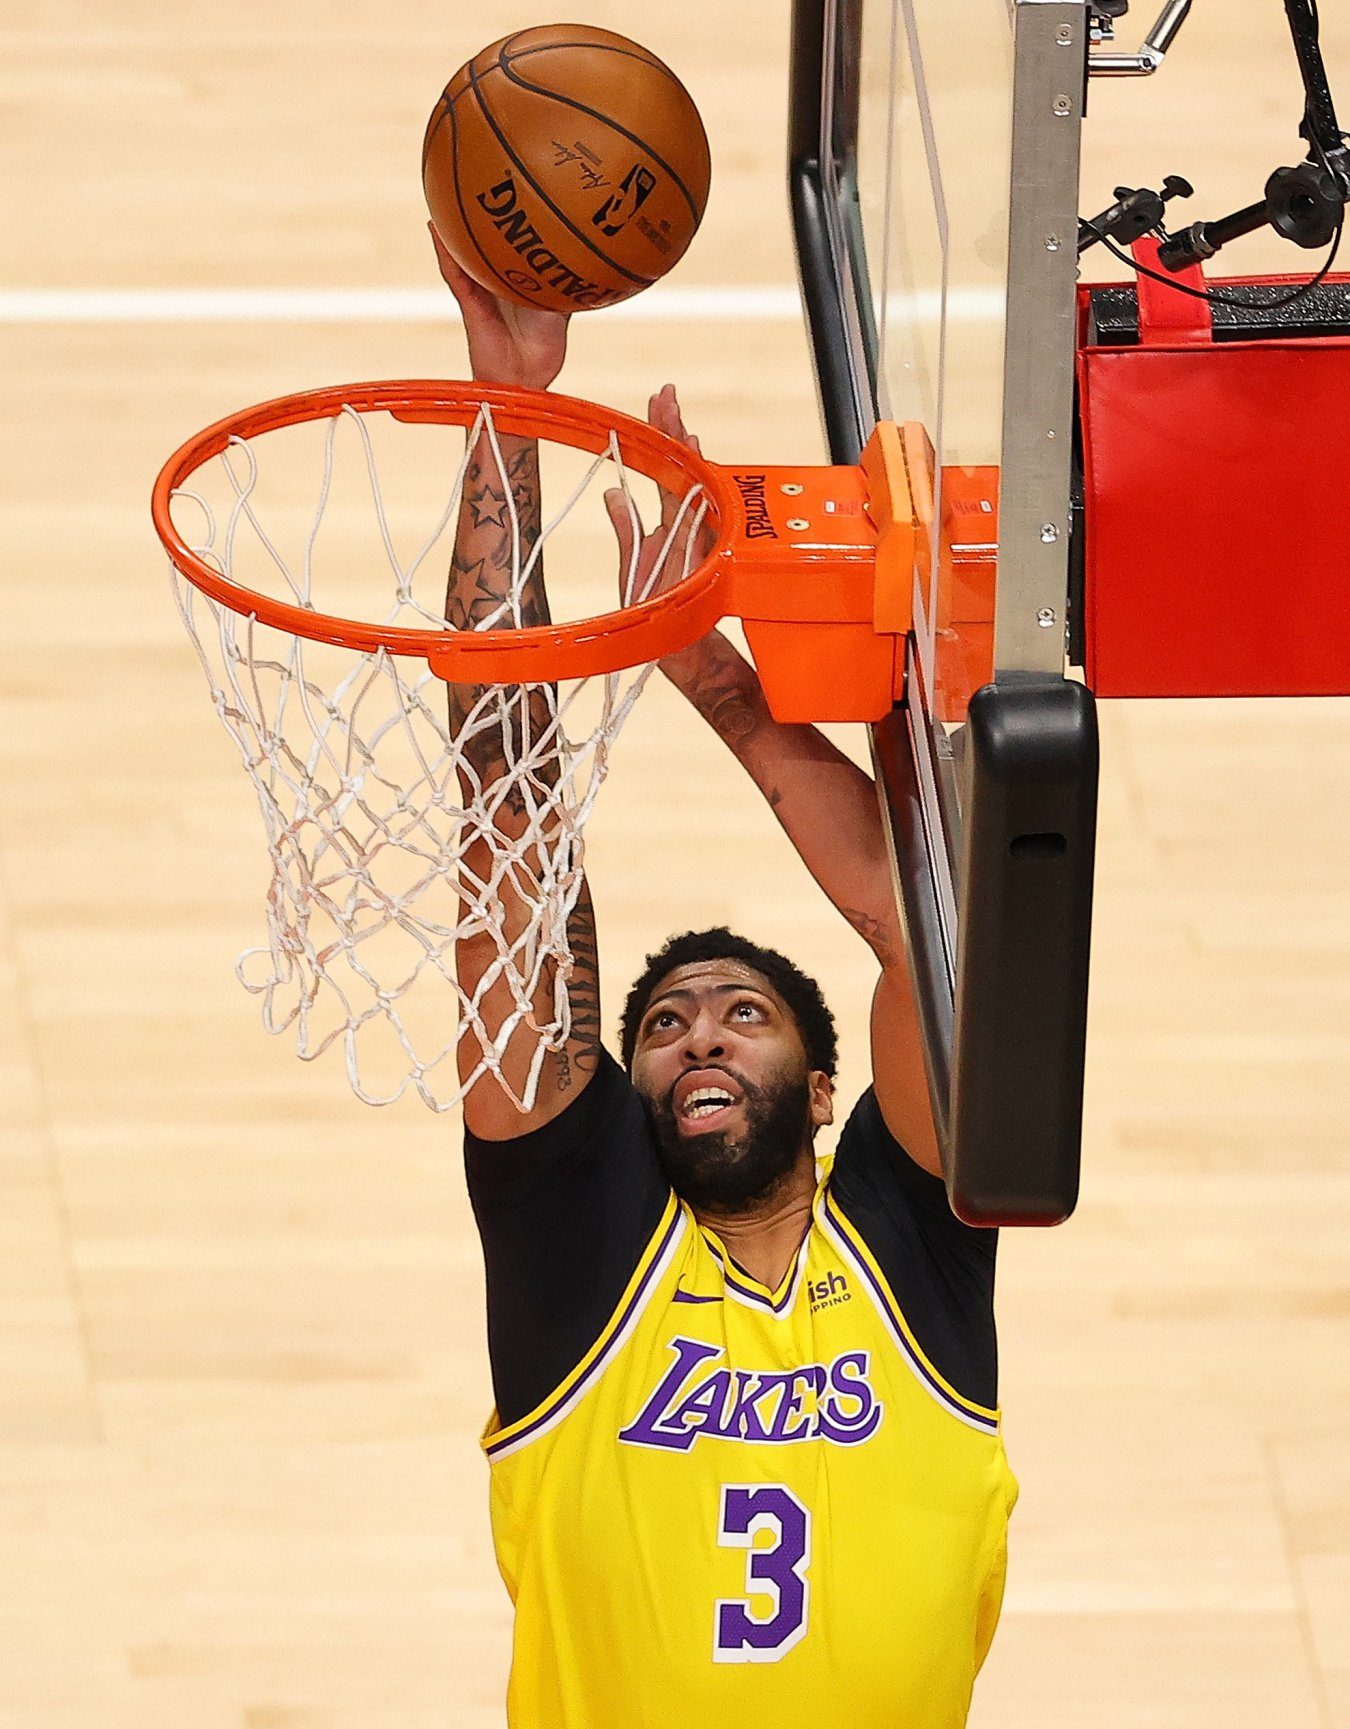 Anthony Davis (ala-pívot, Los Angeles Lakers)